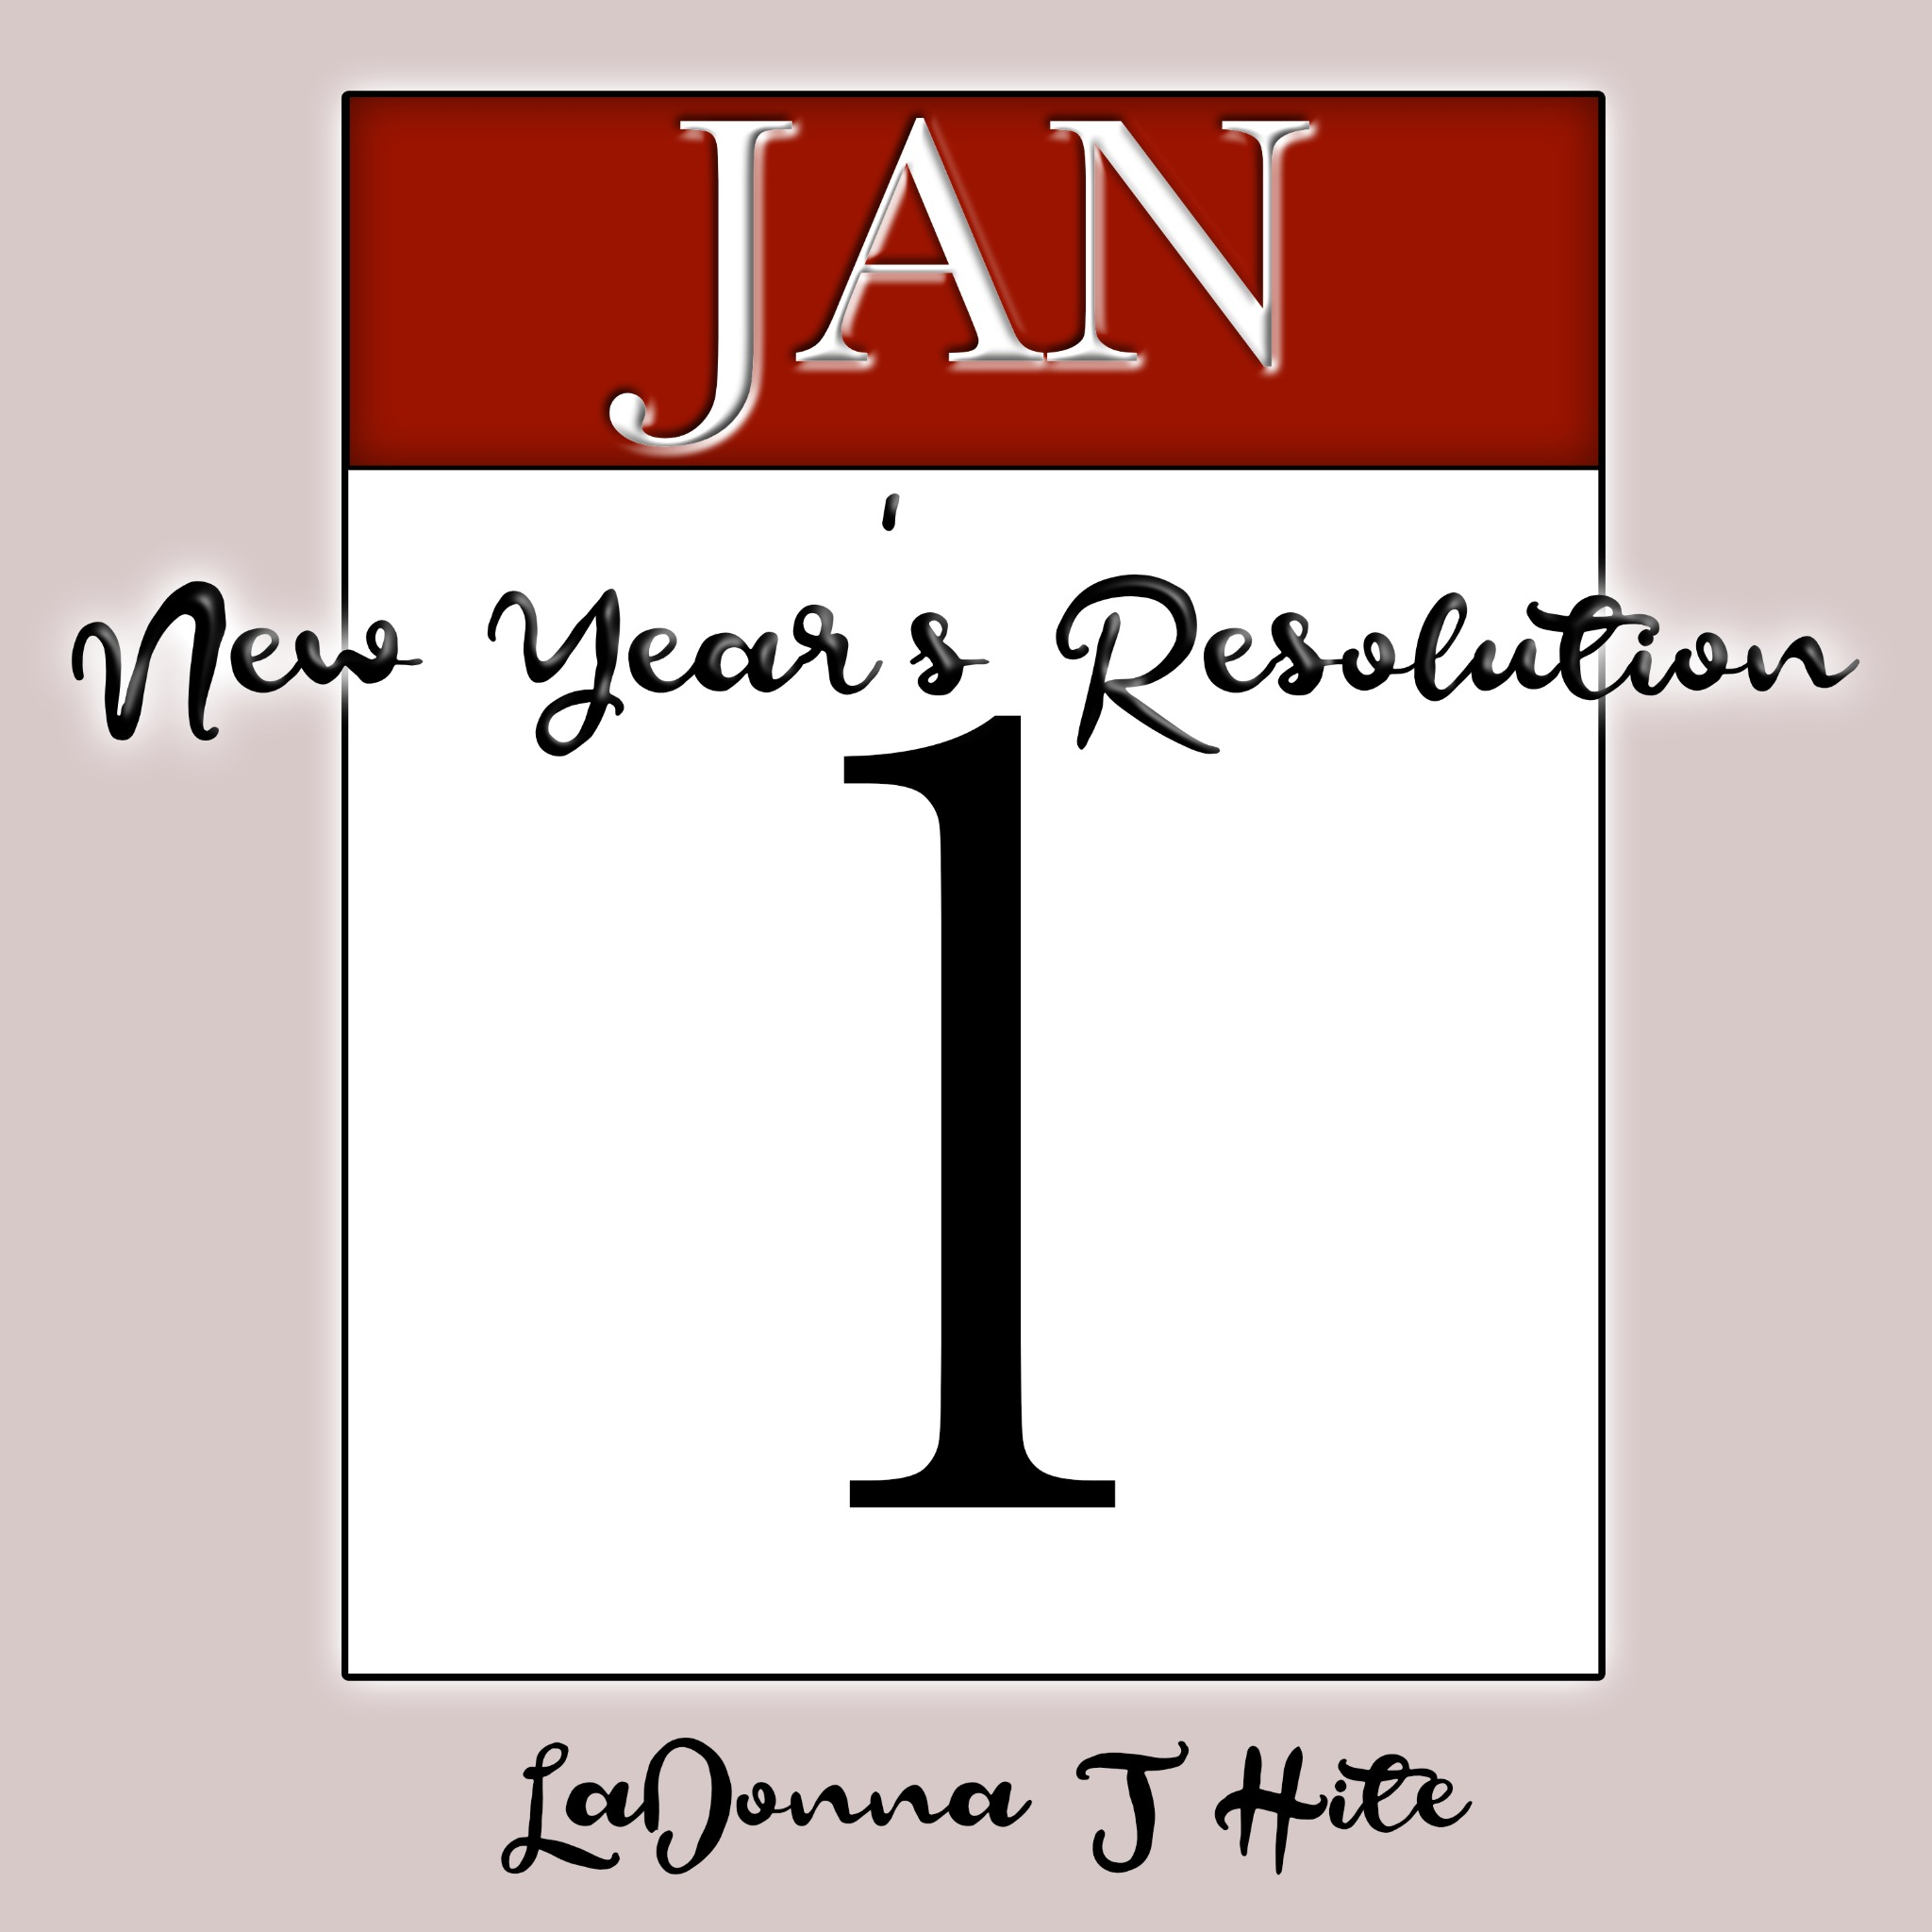 New Year's Resolution Audiobook (RENT/STREAM only)